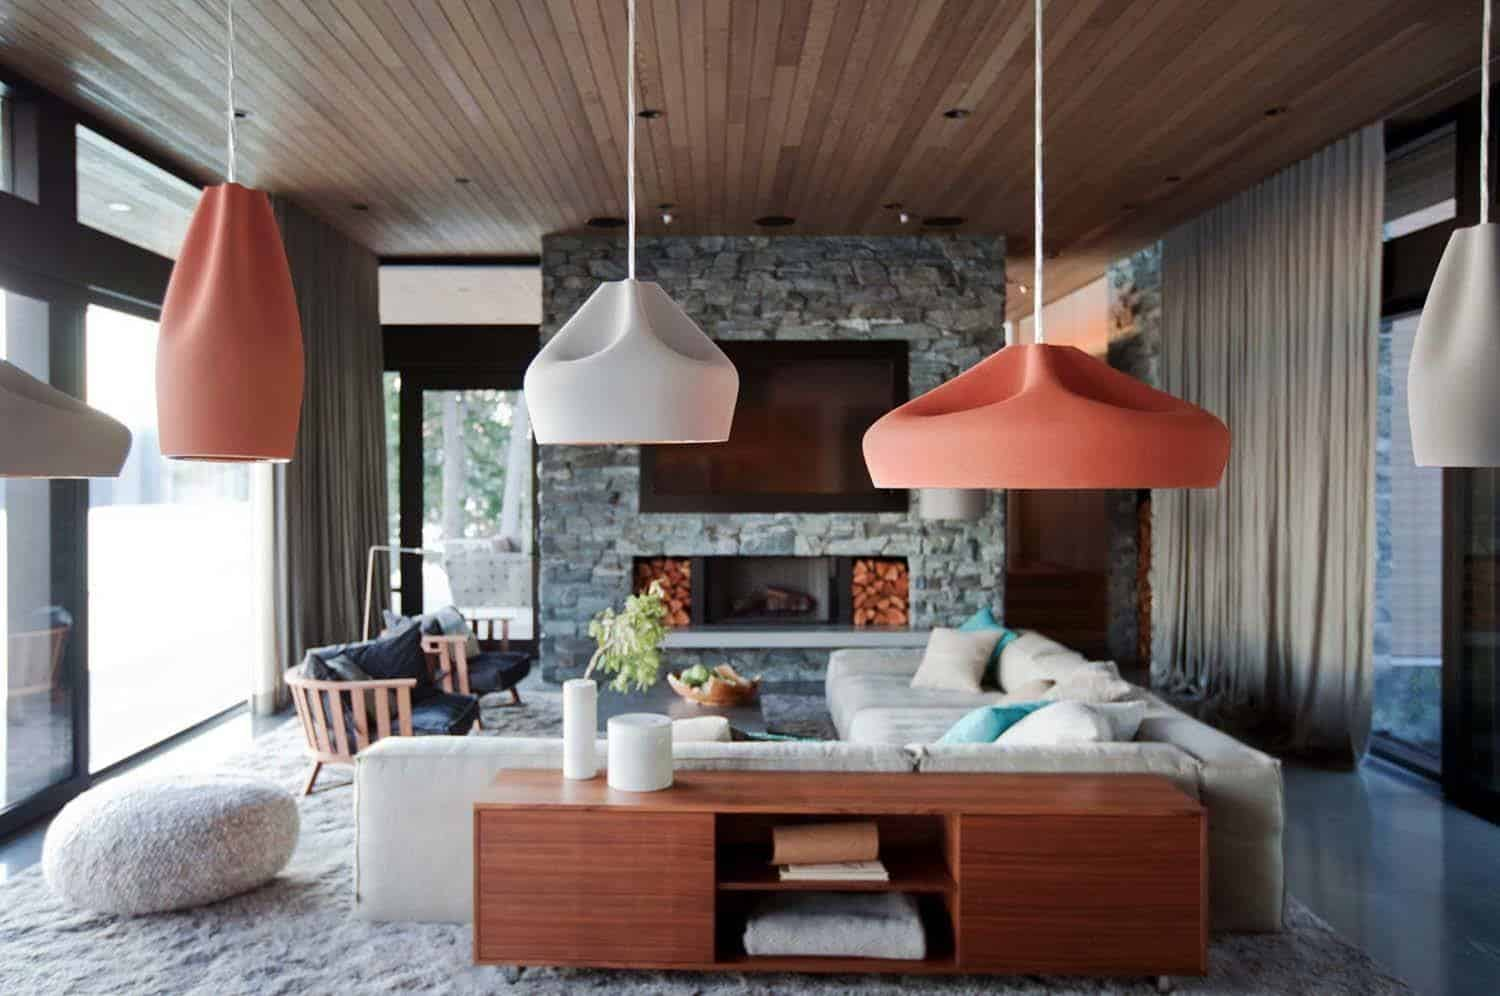 Contemporary Holiday Home-Marrimor Studio-02-1 Kindesign